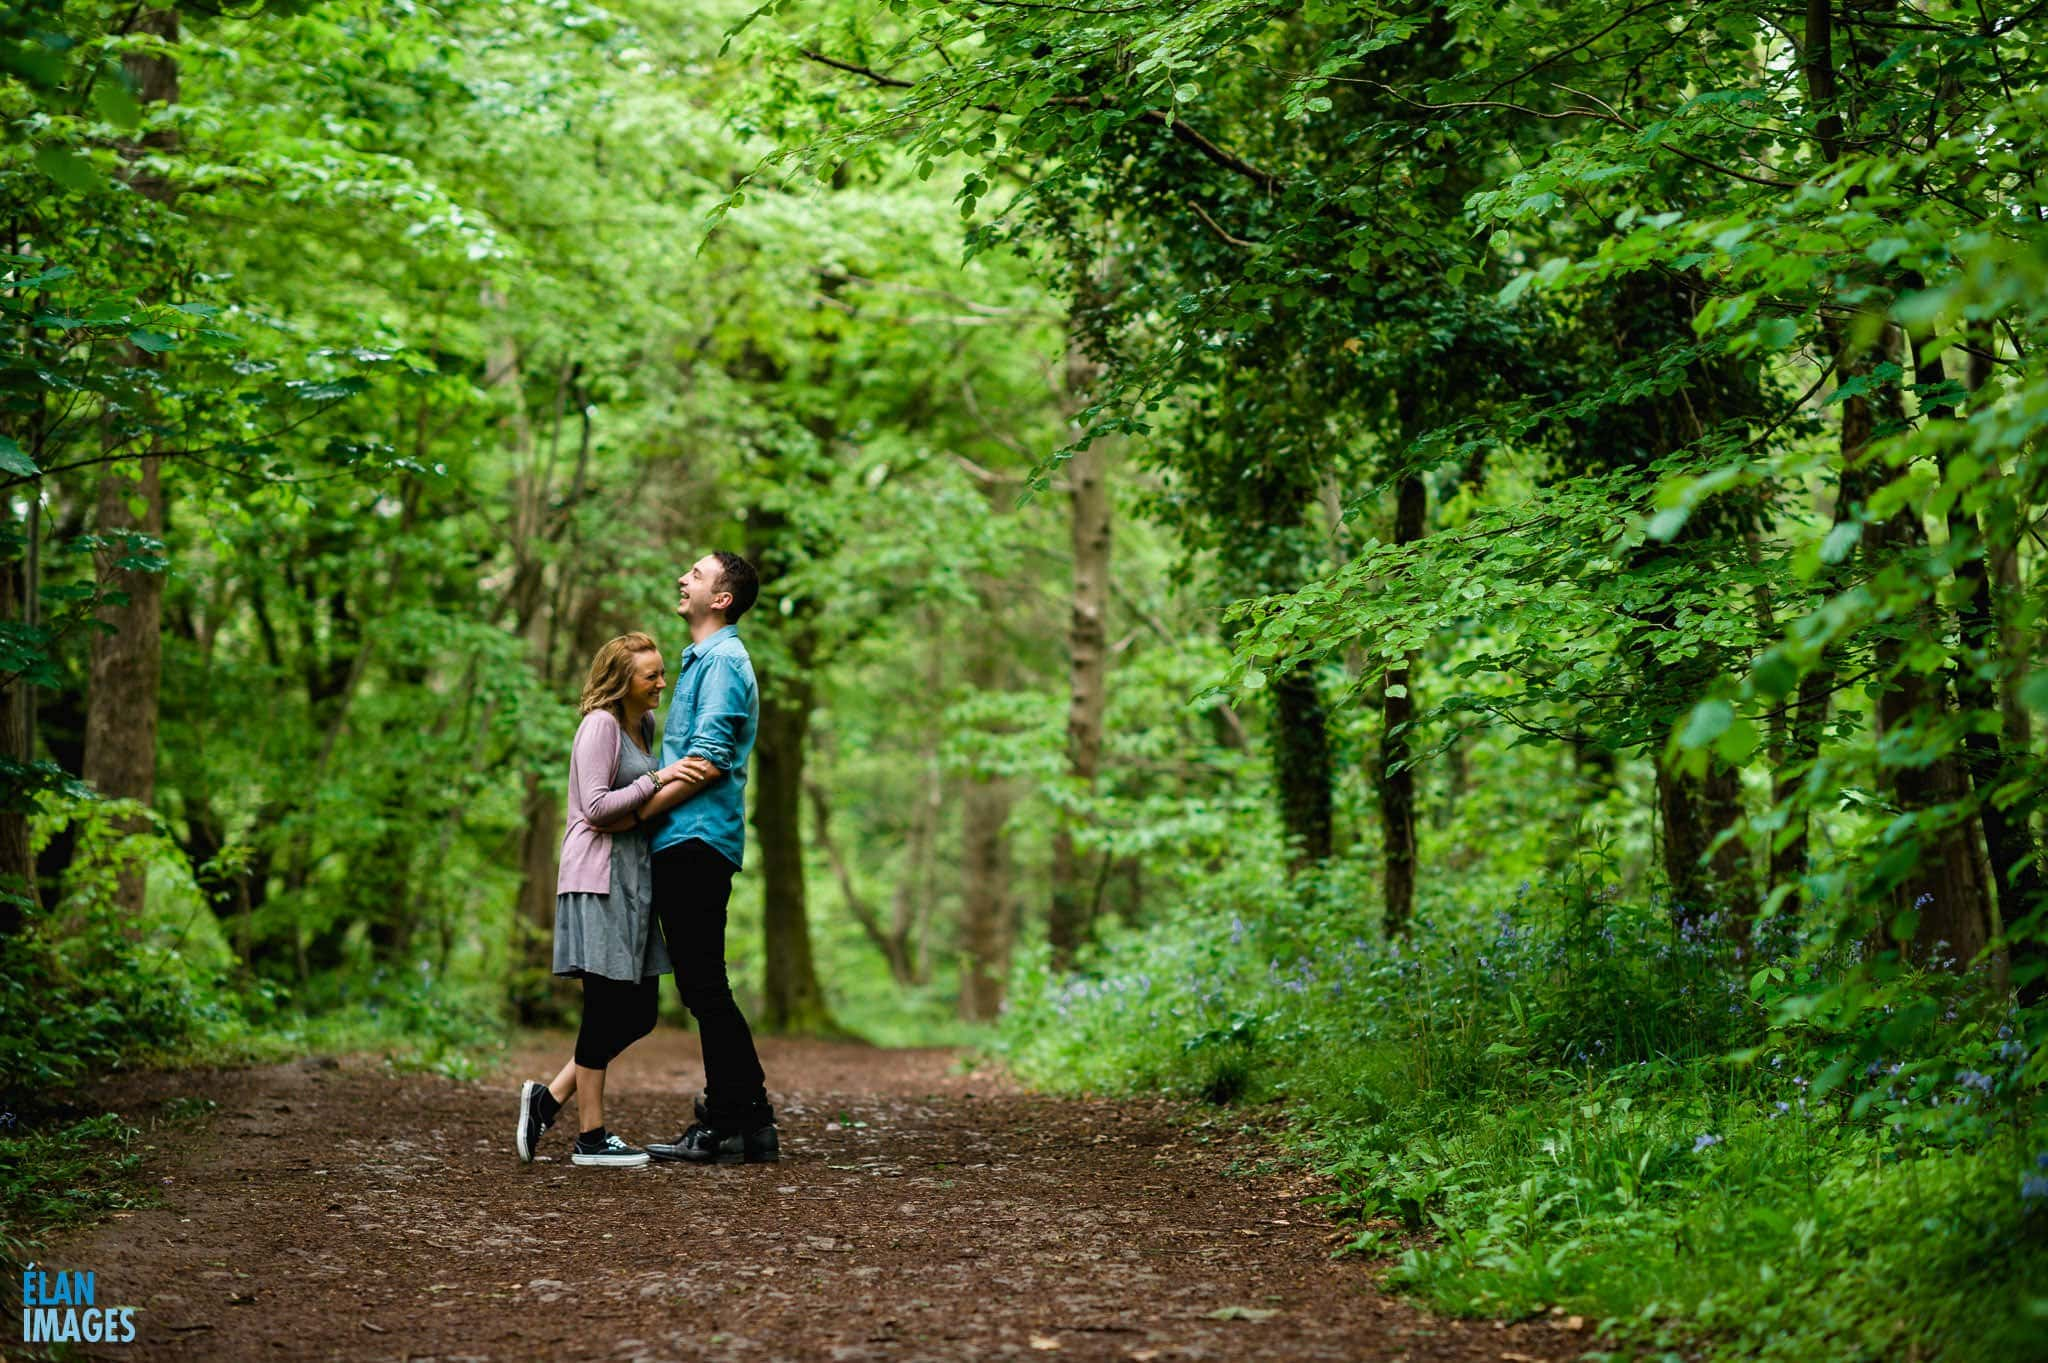 Engagement Photo Shoot in the Bluebell Woods near Bristol 9